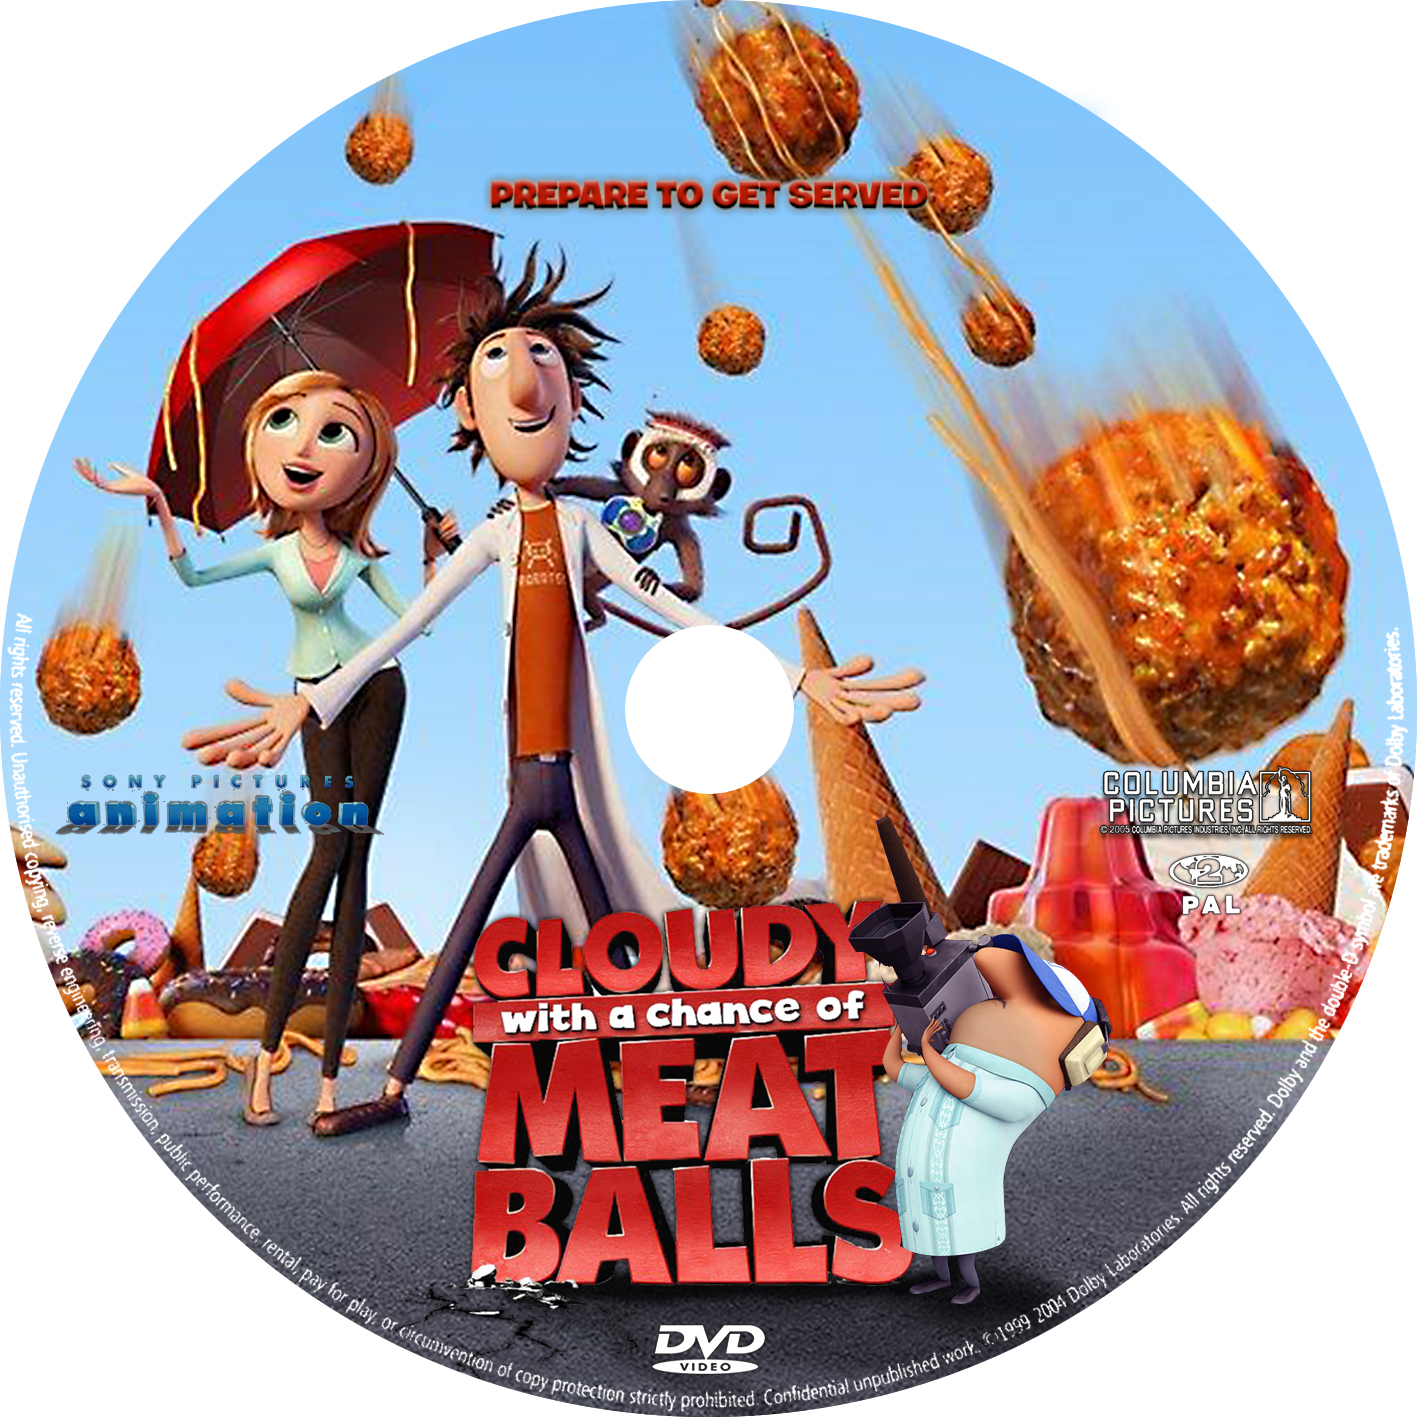 picture suggestion for cloudy with a chance of meatballs dvd